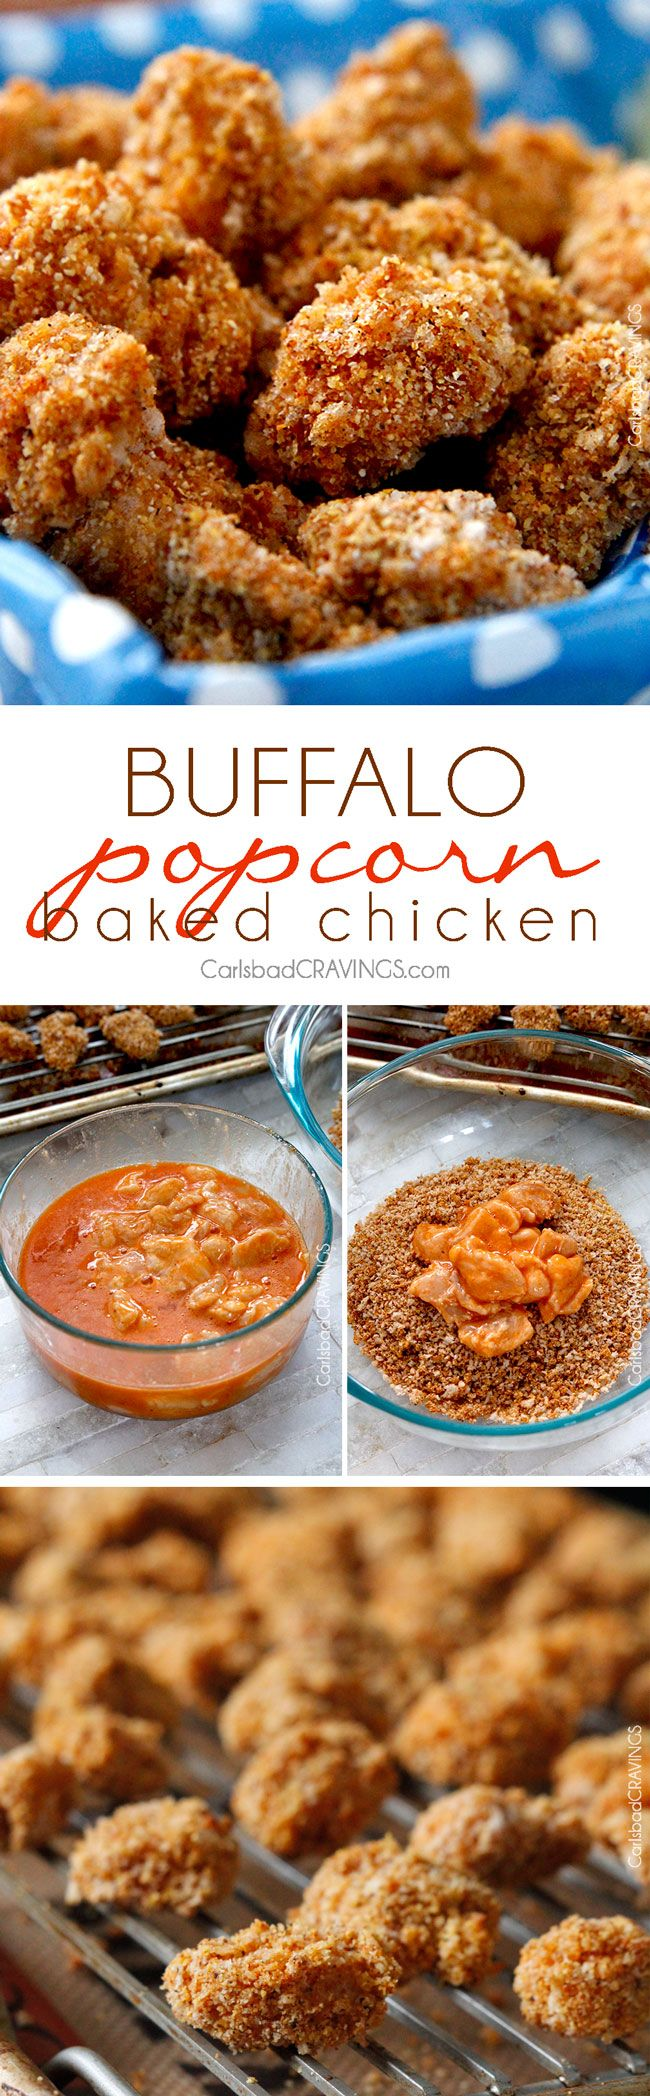 Baked Buffalo Popcorn Chicken are so addictingly crispy, better than any chicken nugget! Dunked in buffalo sauce then baked with spiced panko and cornmeal. And the creamy Honey Buffalo Dip is heavenly!